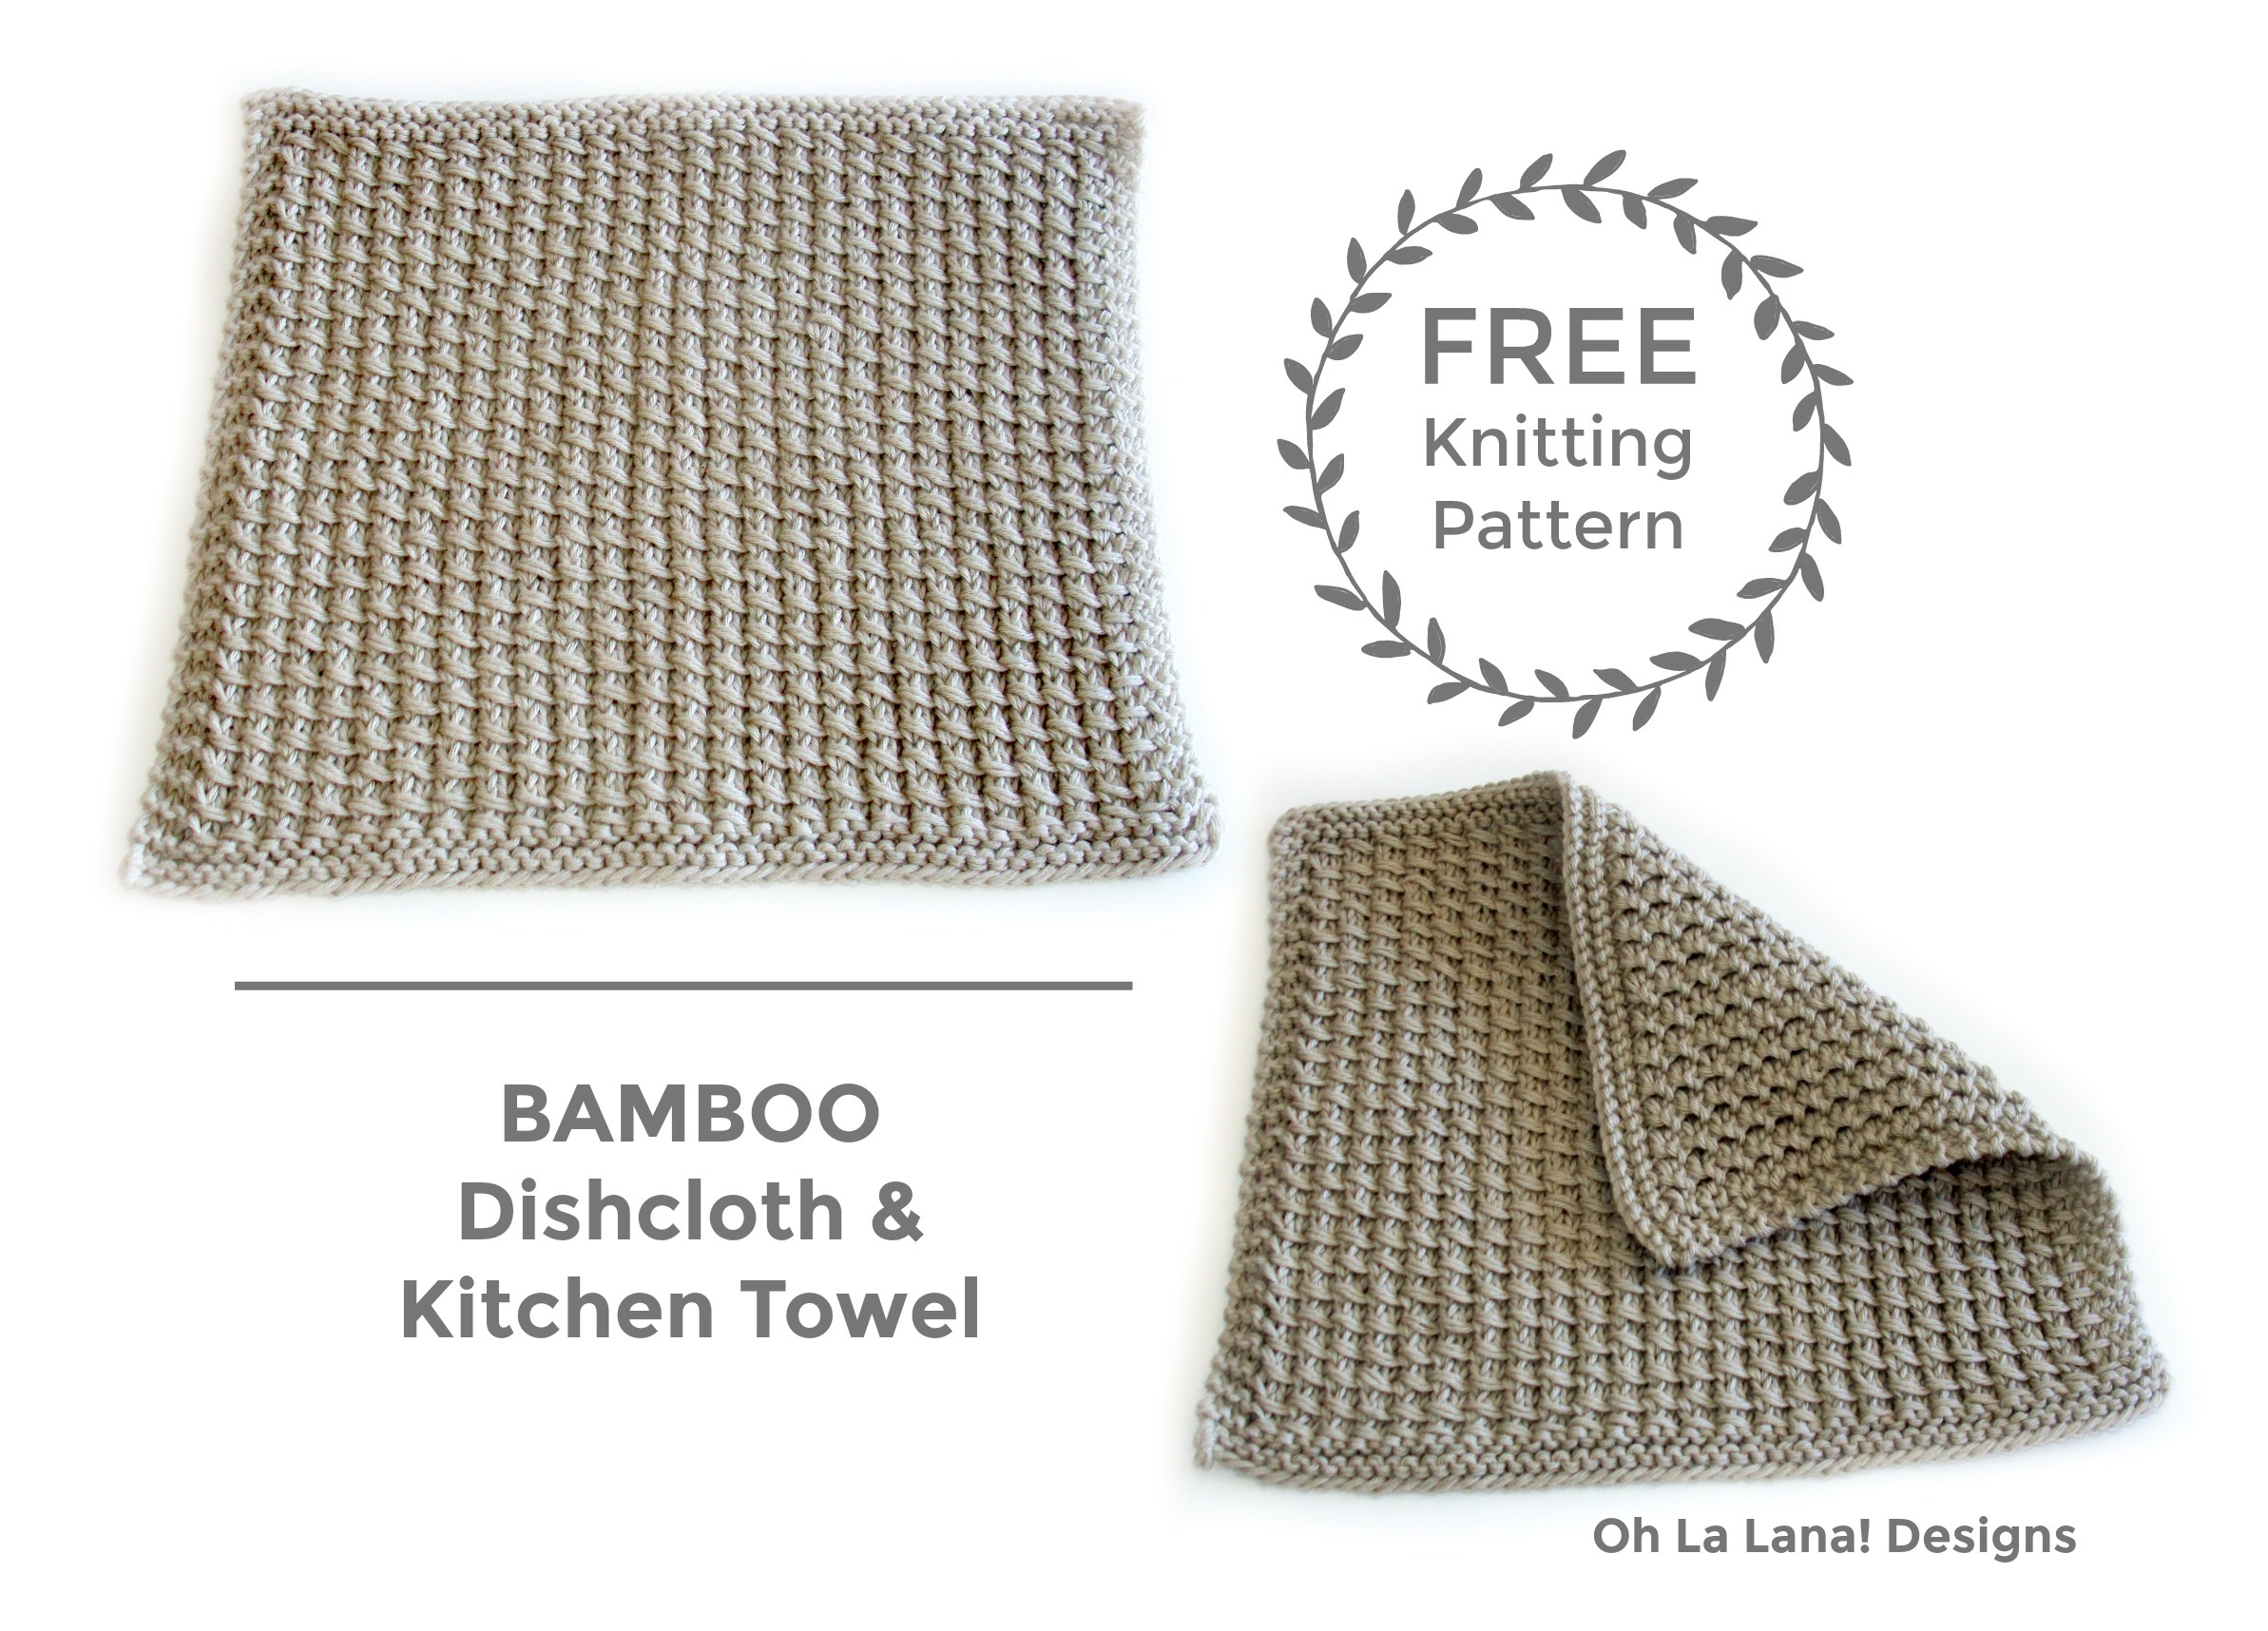 BAMBOO Dishcloth and Kitchen Towel FREE PATTERN